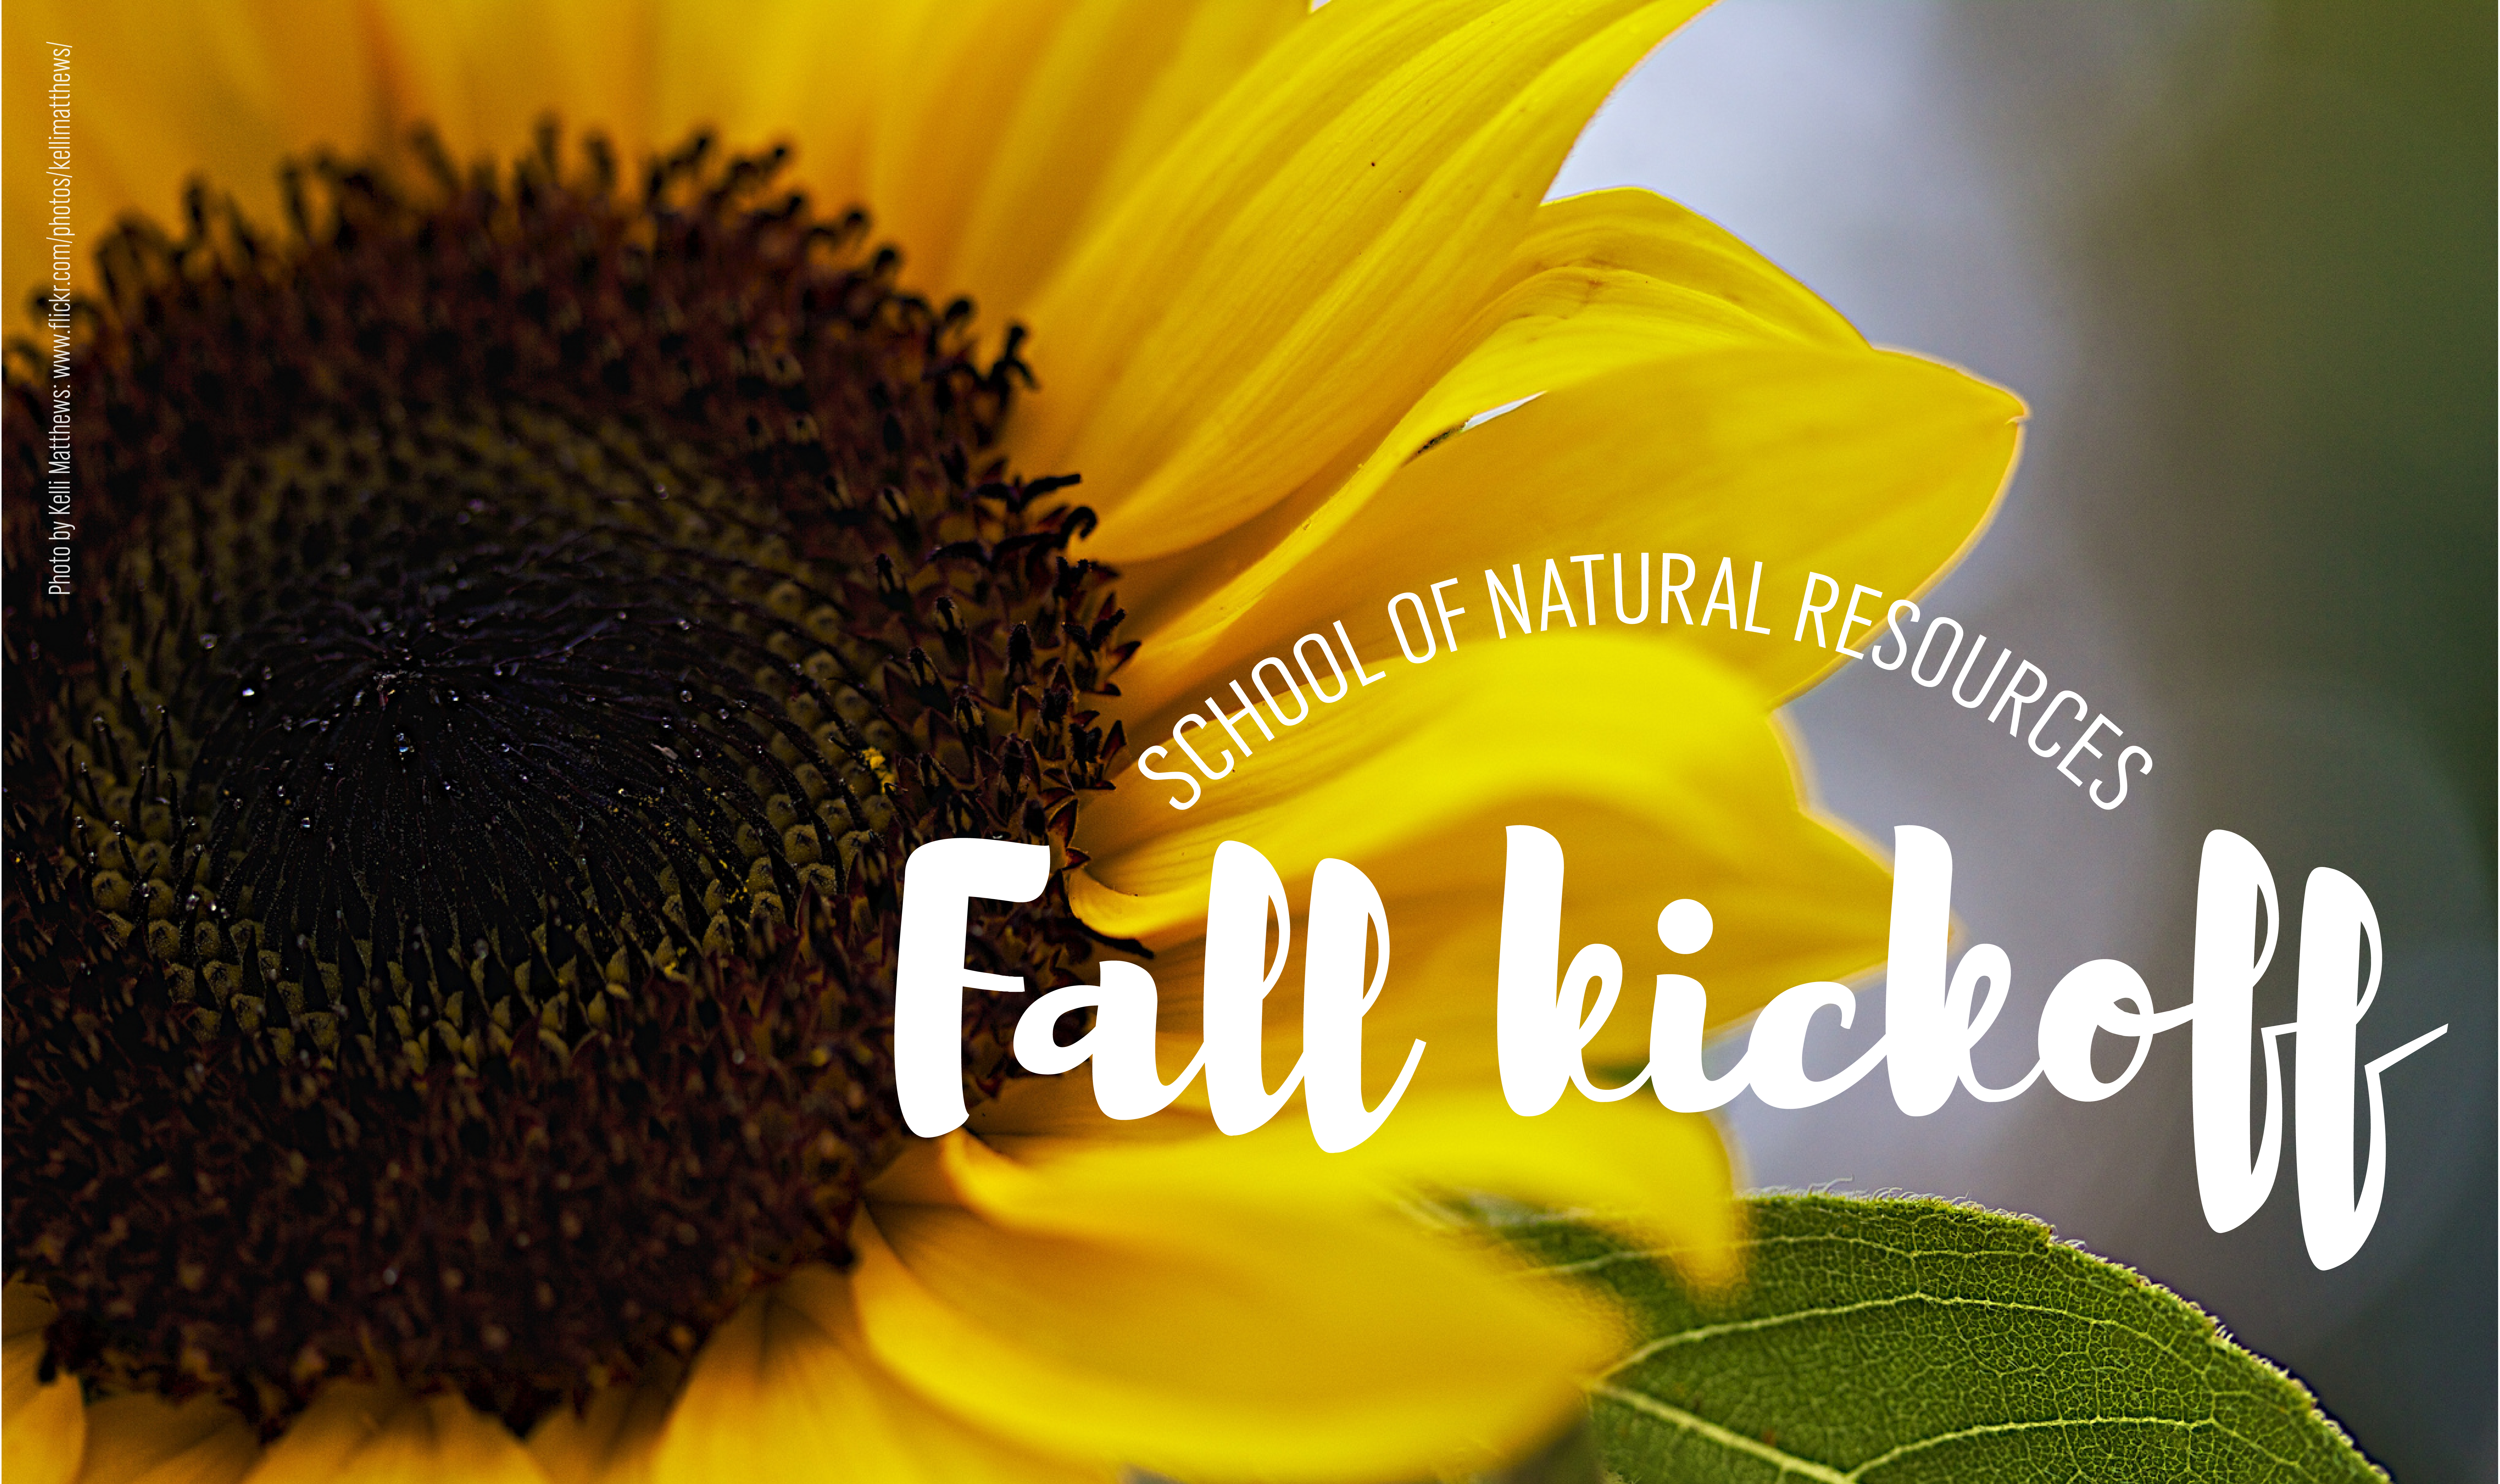 The SNR Fall Kickoff is set for Friday, Aug. 18, 2017.   Flick image by Kelli Matthews